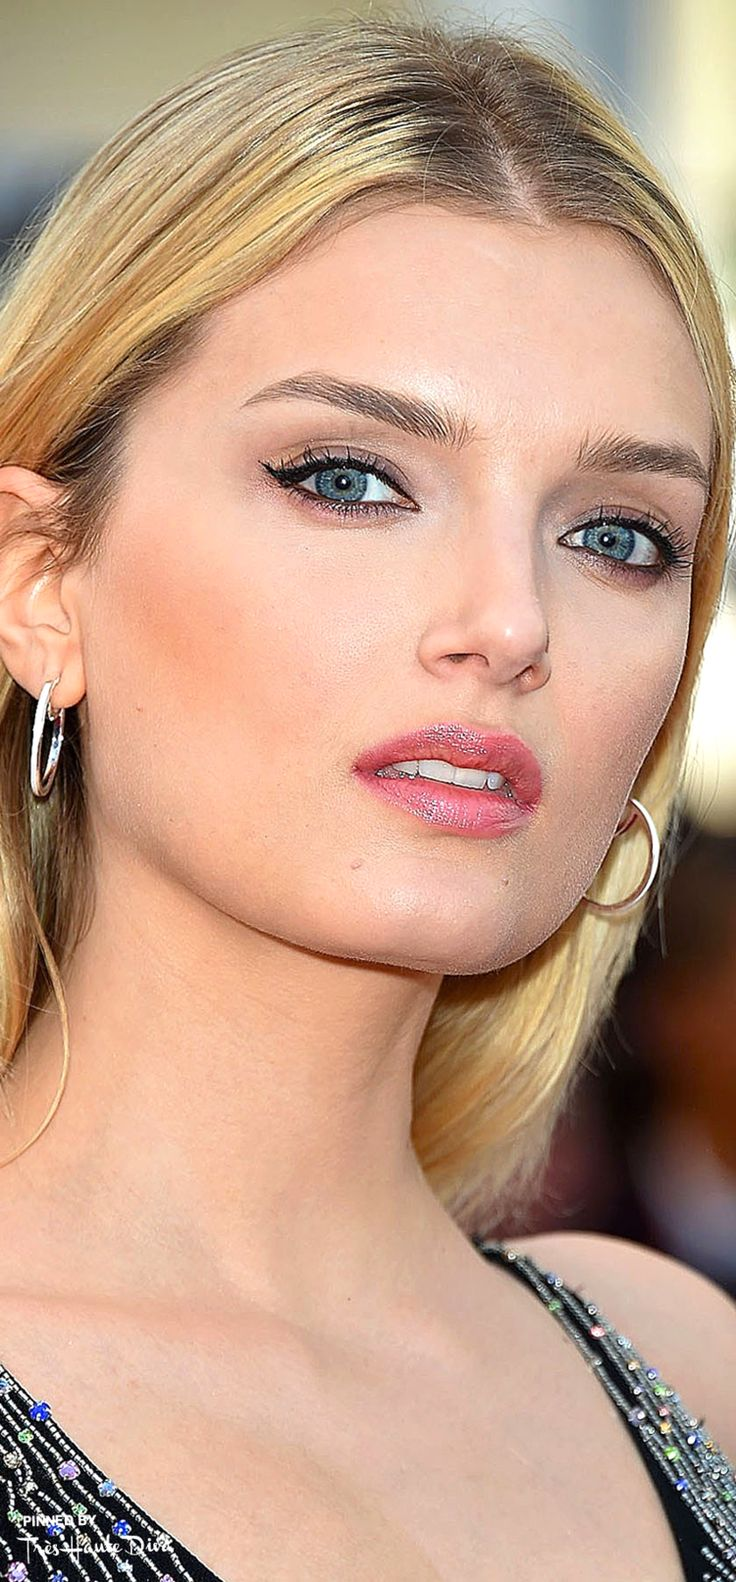 Lily Donaldson nudes (72 pics), photos Tits, Twitter, braless 2016